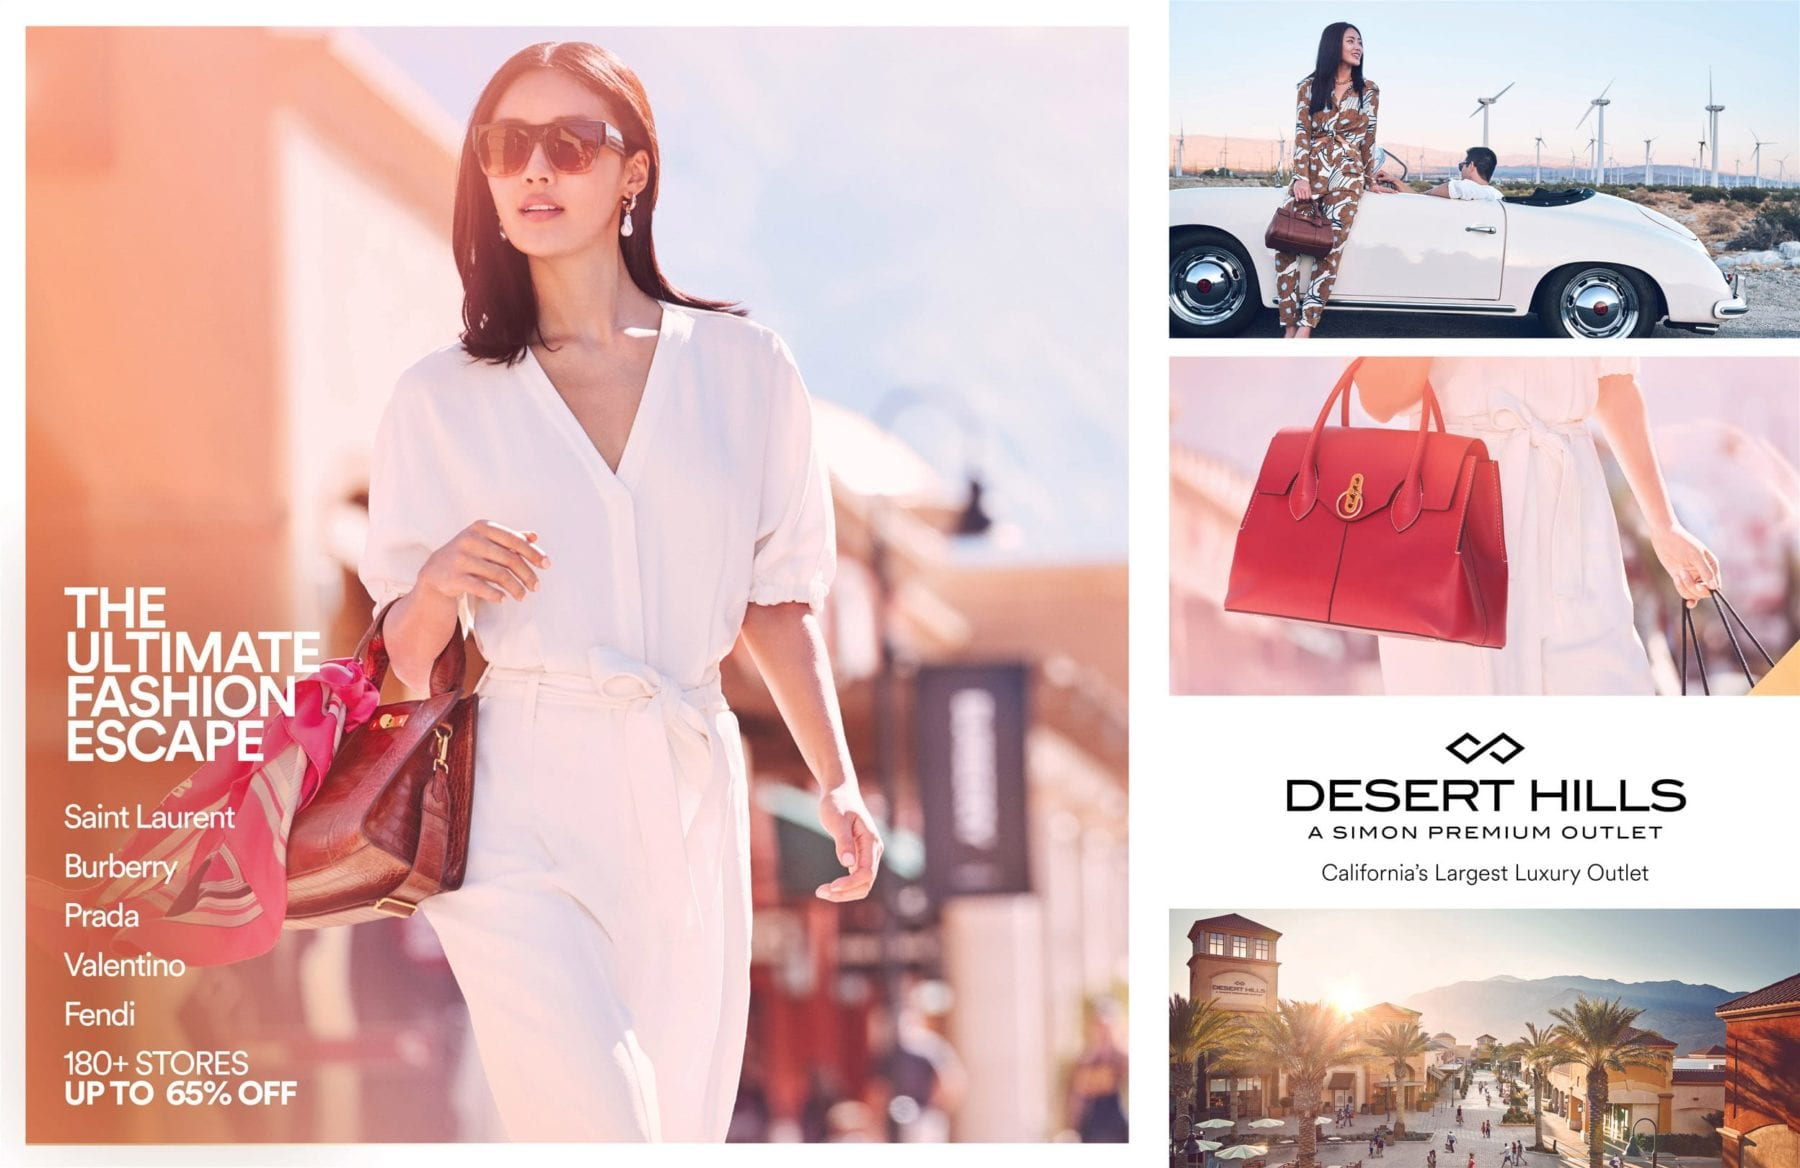 DESERT-HILLS-AD-LAYOUTS-FROM-SHOOT_FOR-WEBSITE3-1